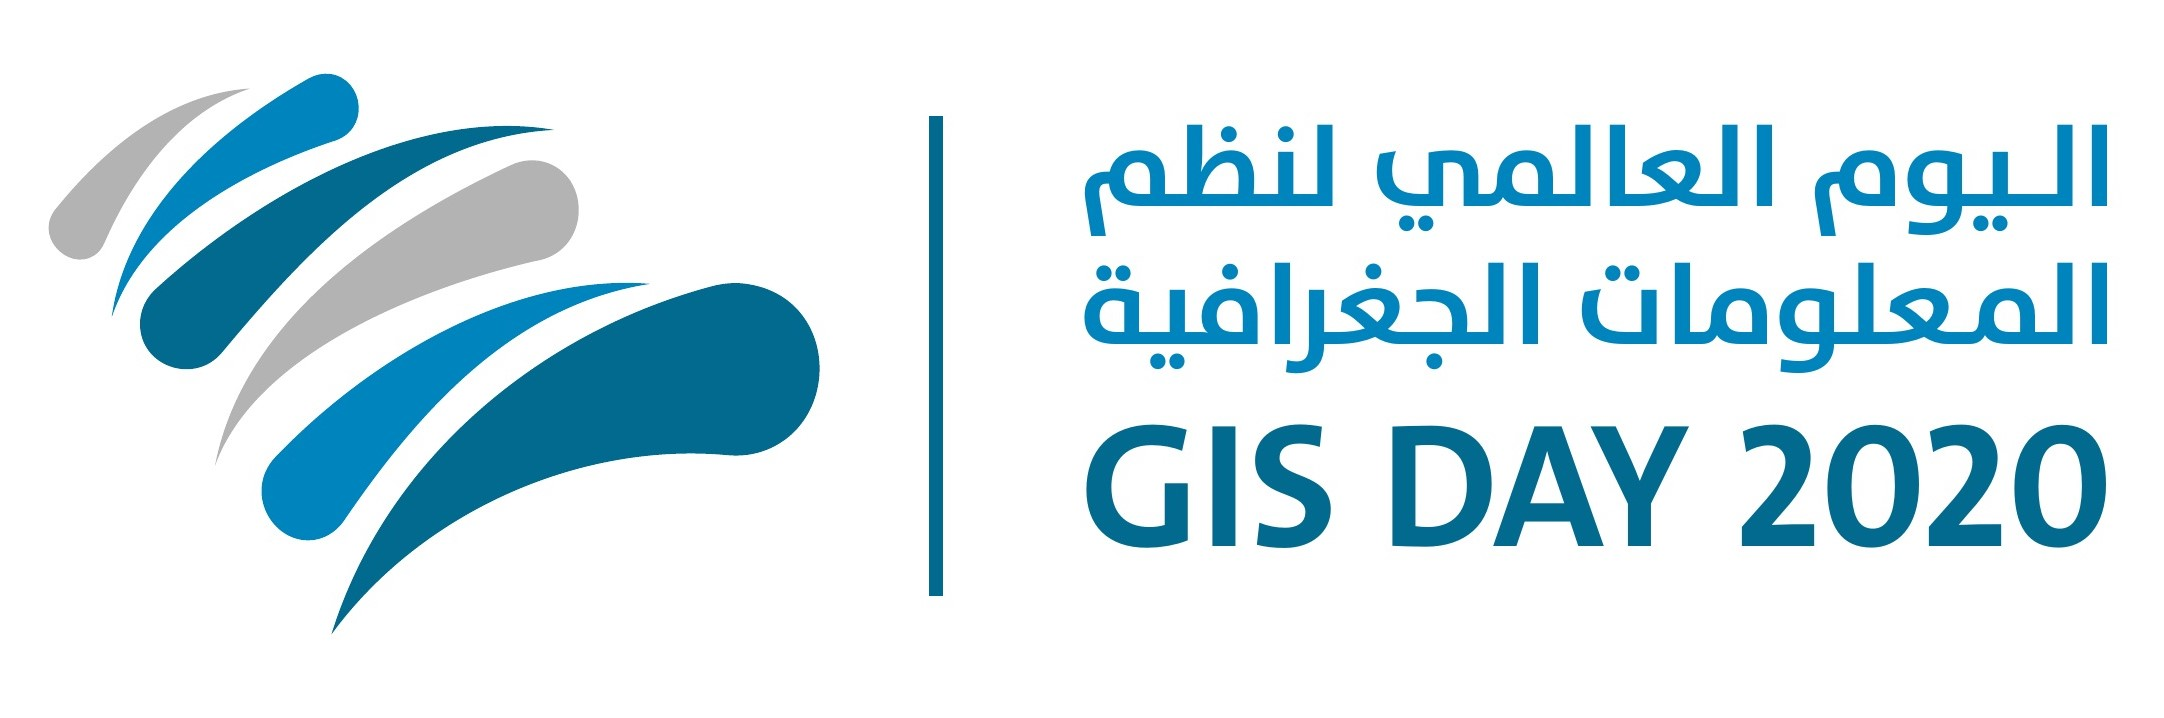 Sponsoring The International GIS Day